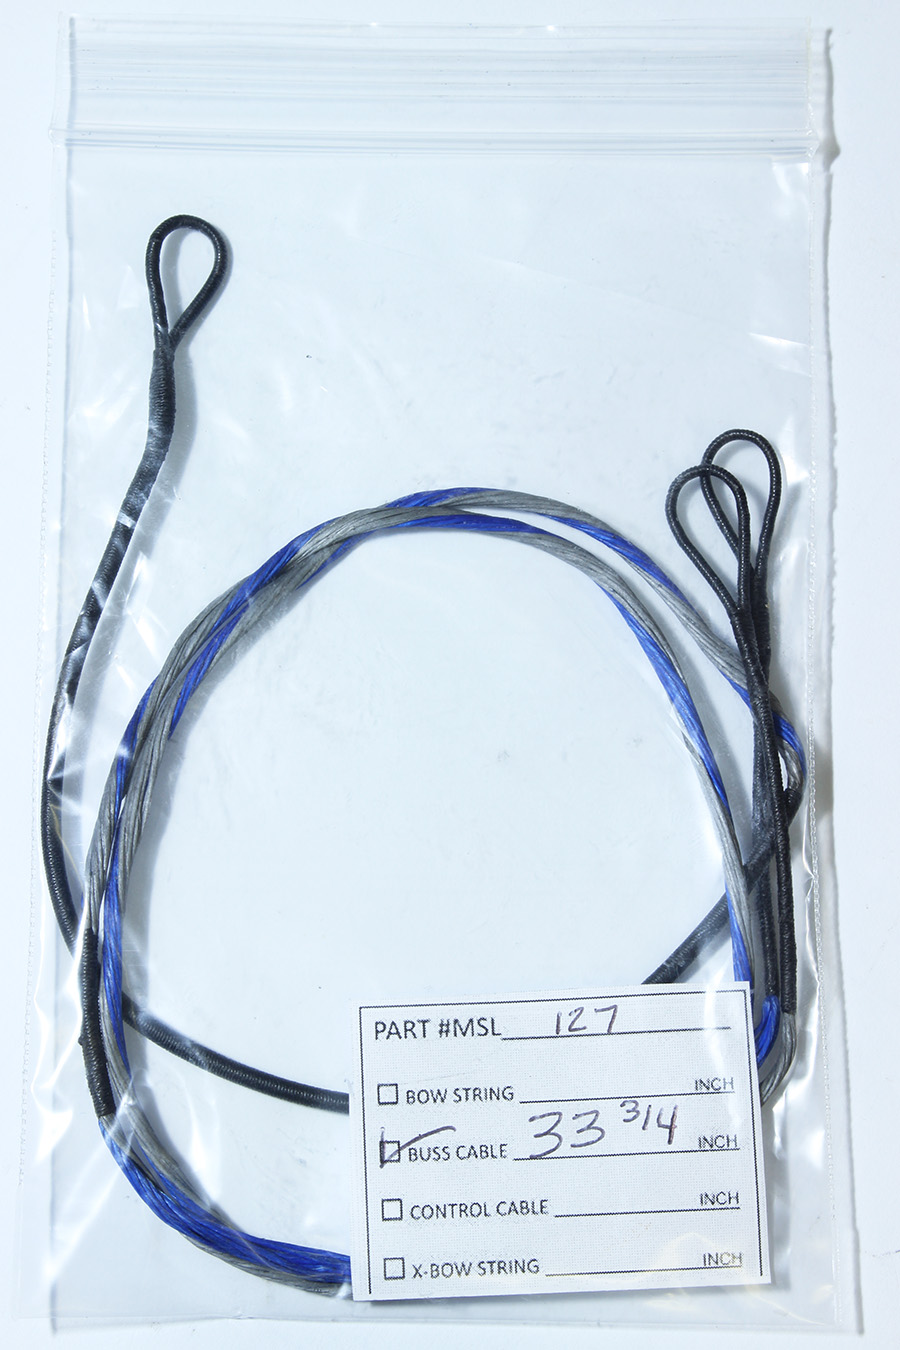 33-3/4 in. Buss Cable, Compound Bow Replacement Part, Blue/Silver